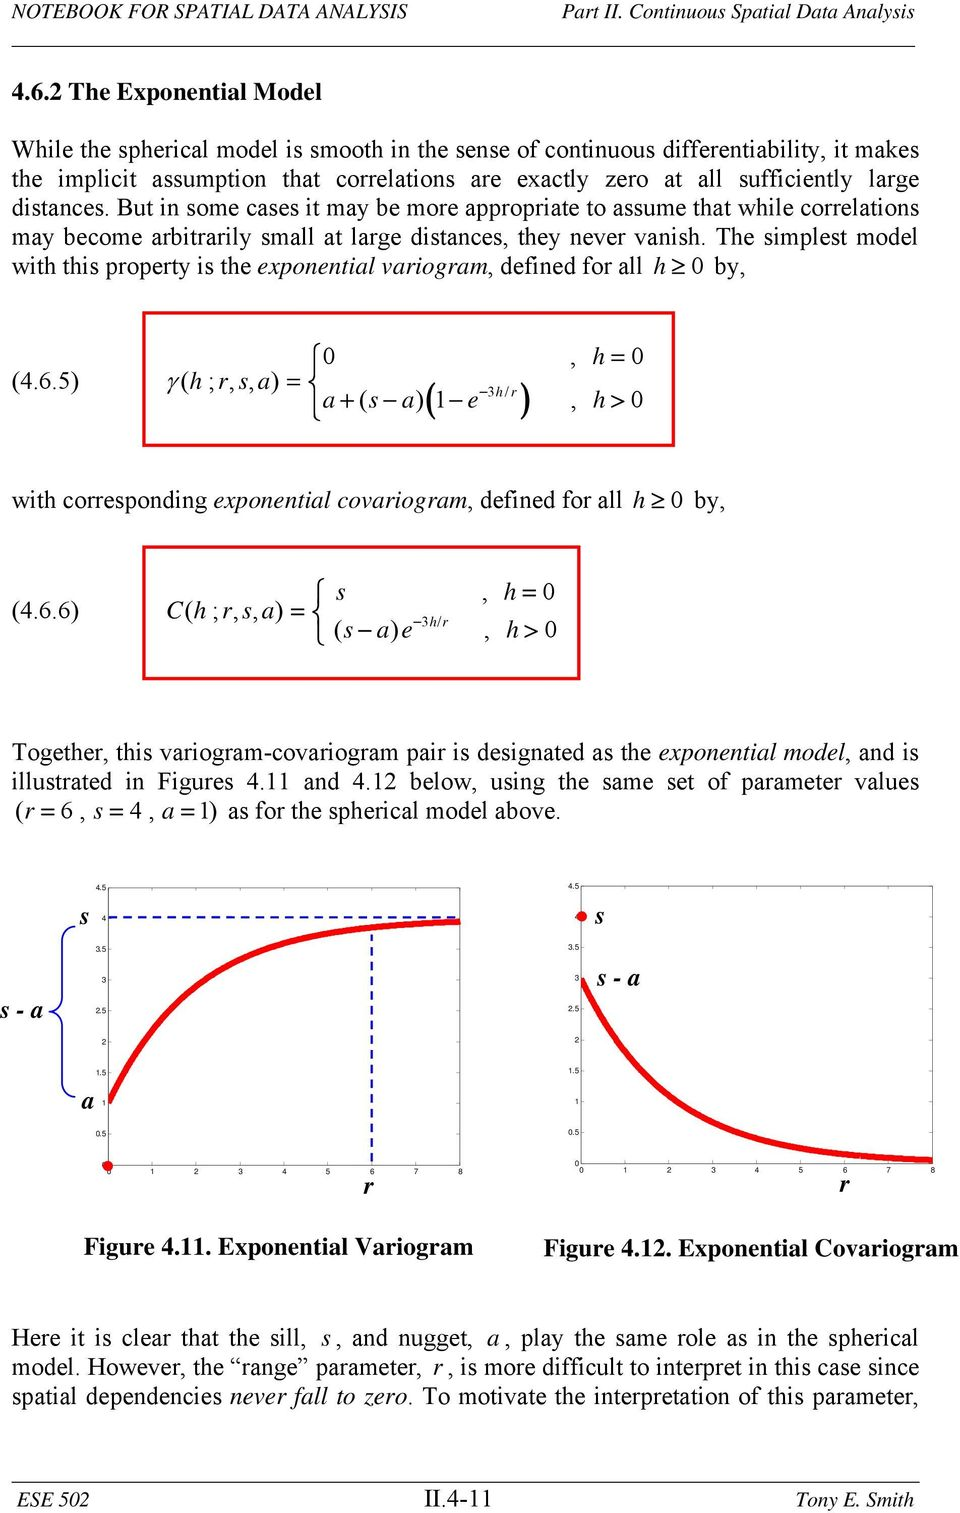 Te simplest model wit tis property is te exponential variogram, defined for all 0 by, (4.6.